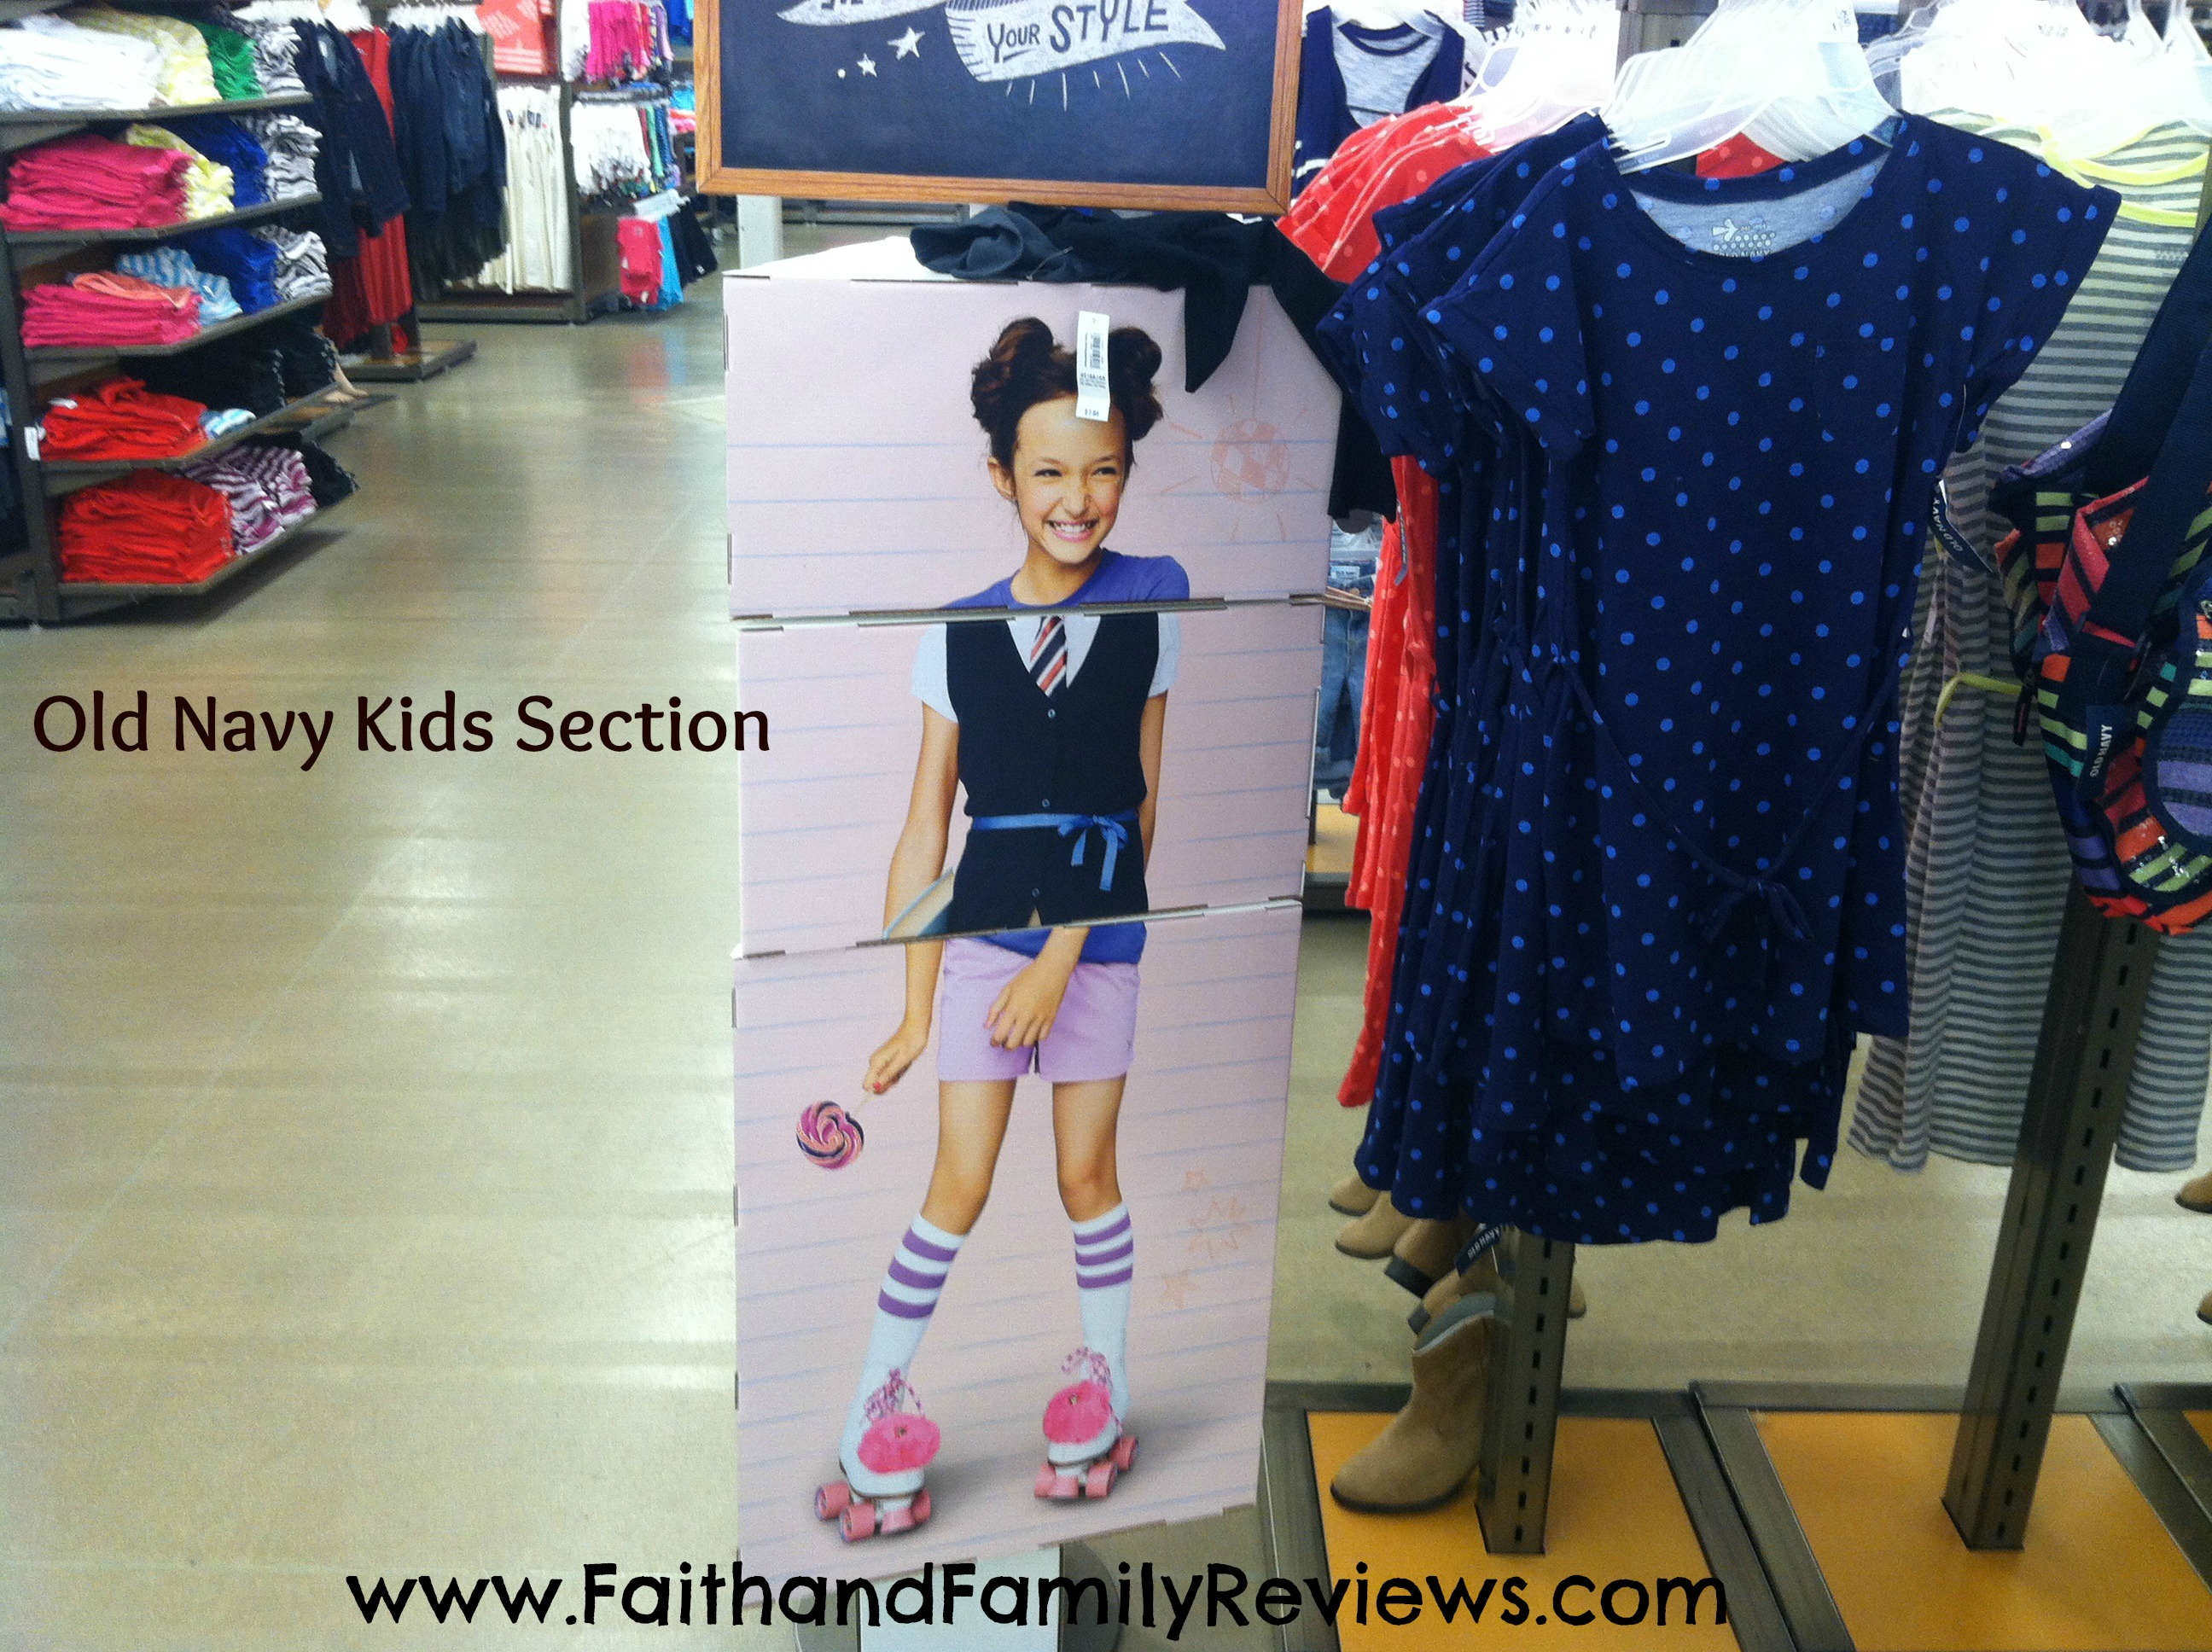 Old Navy Kids Section-edit